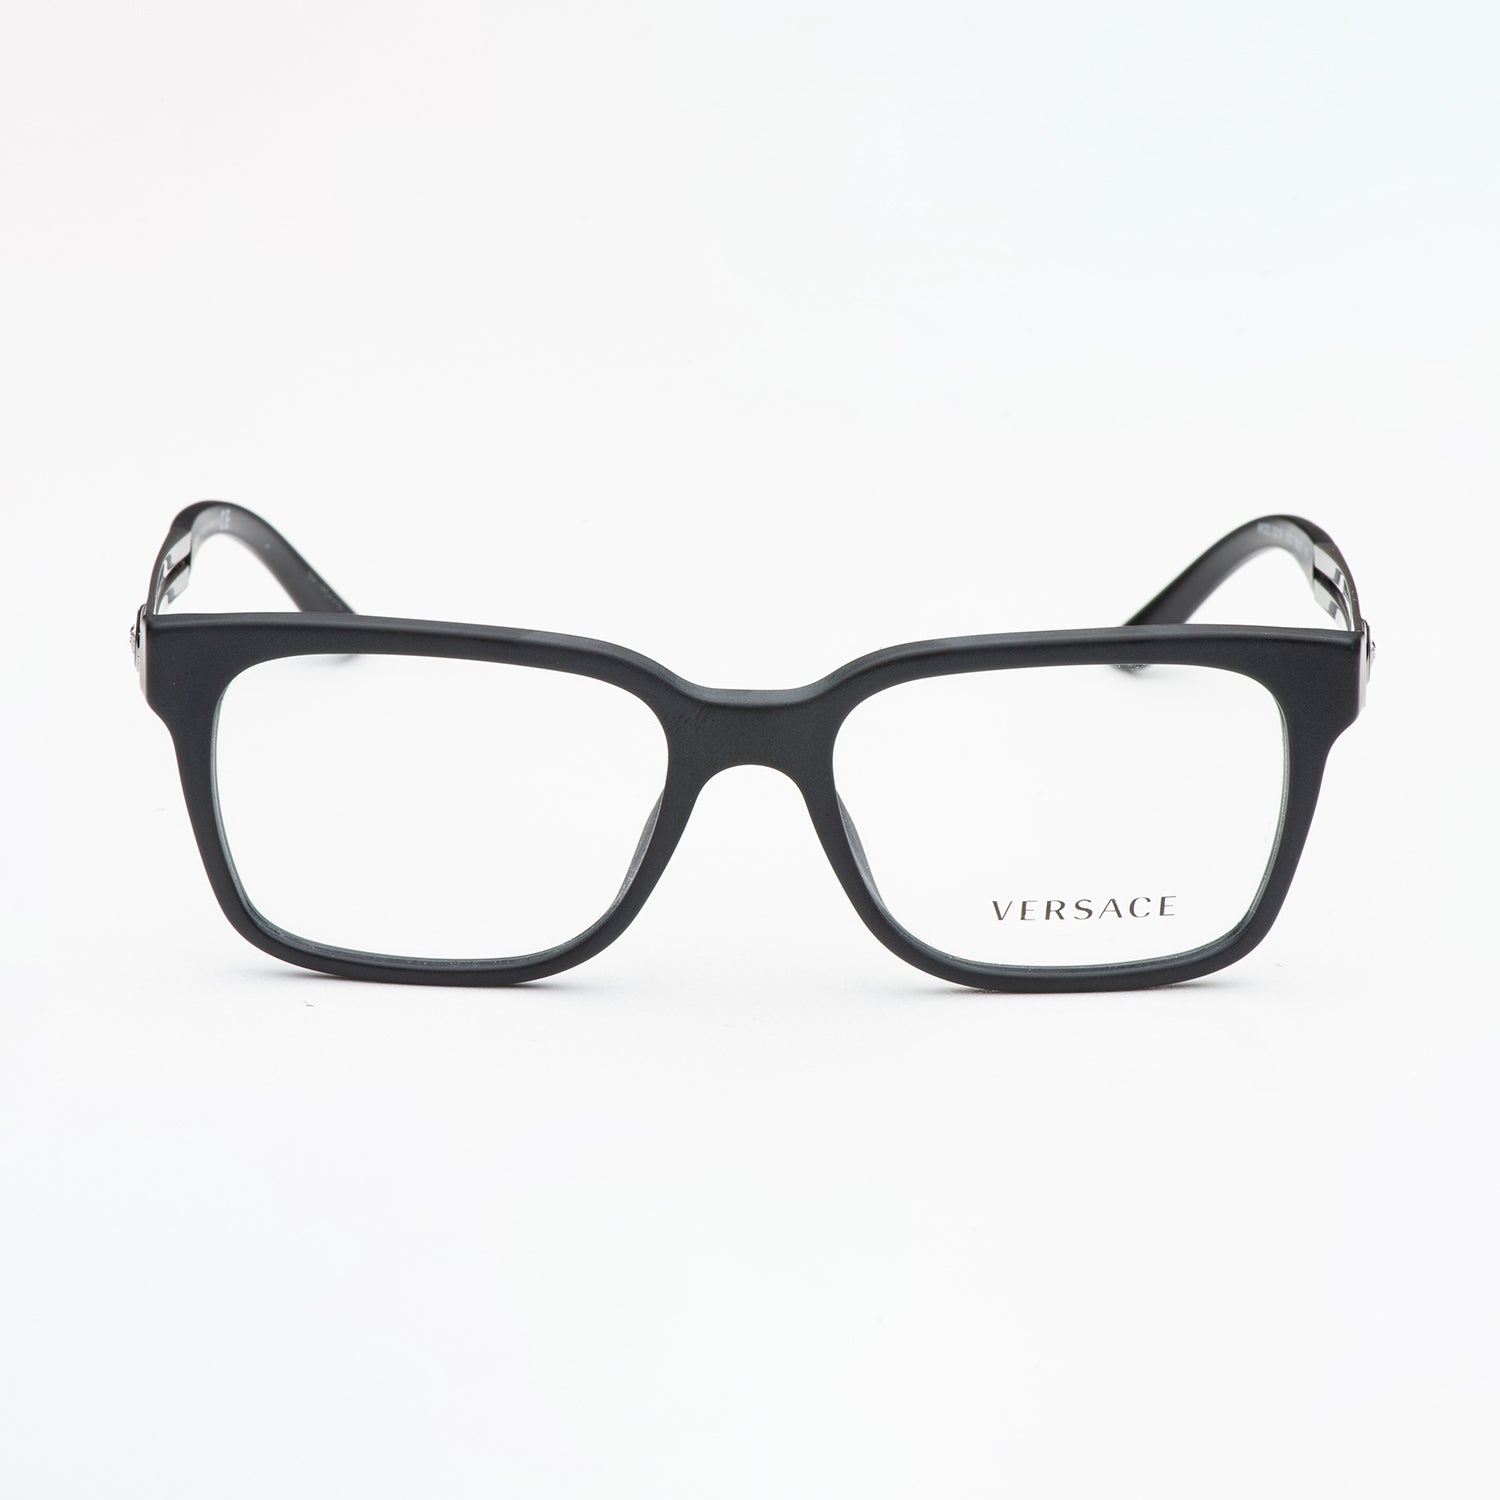 Versace 3218 Prescription Eyeglasses